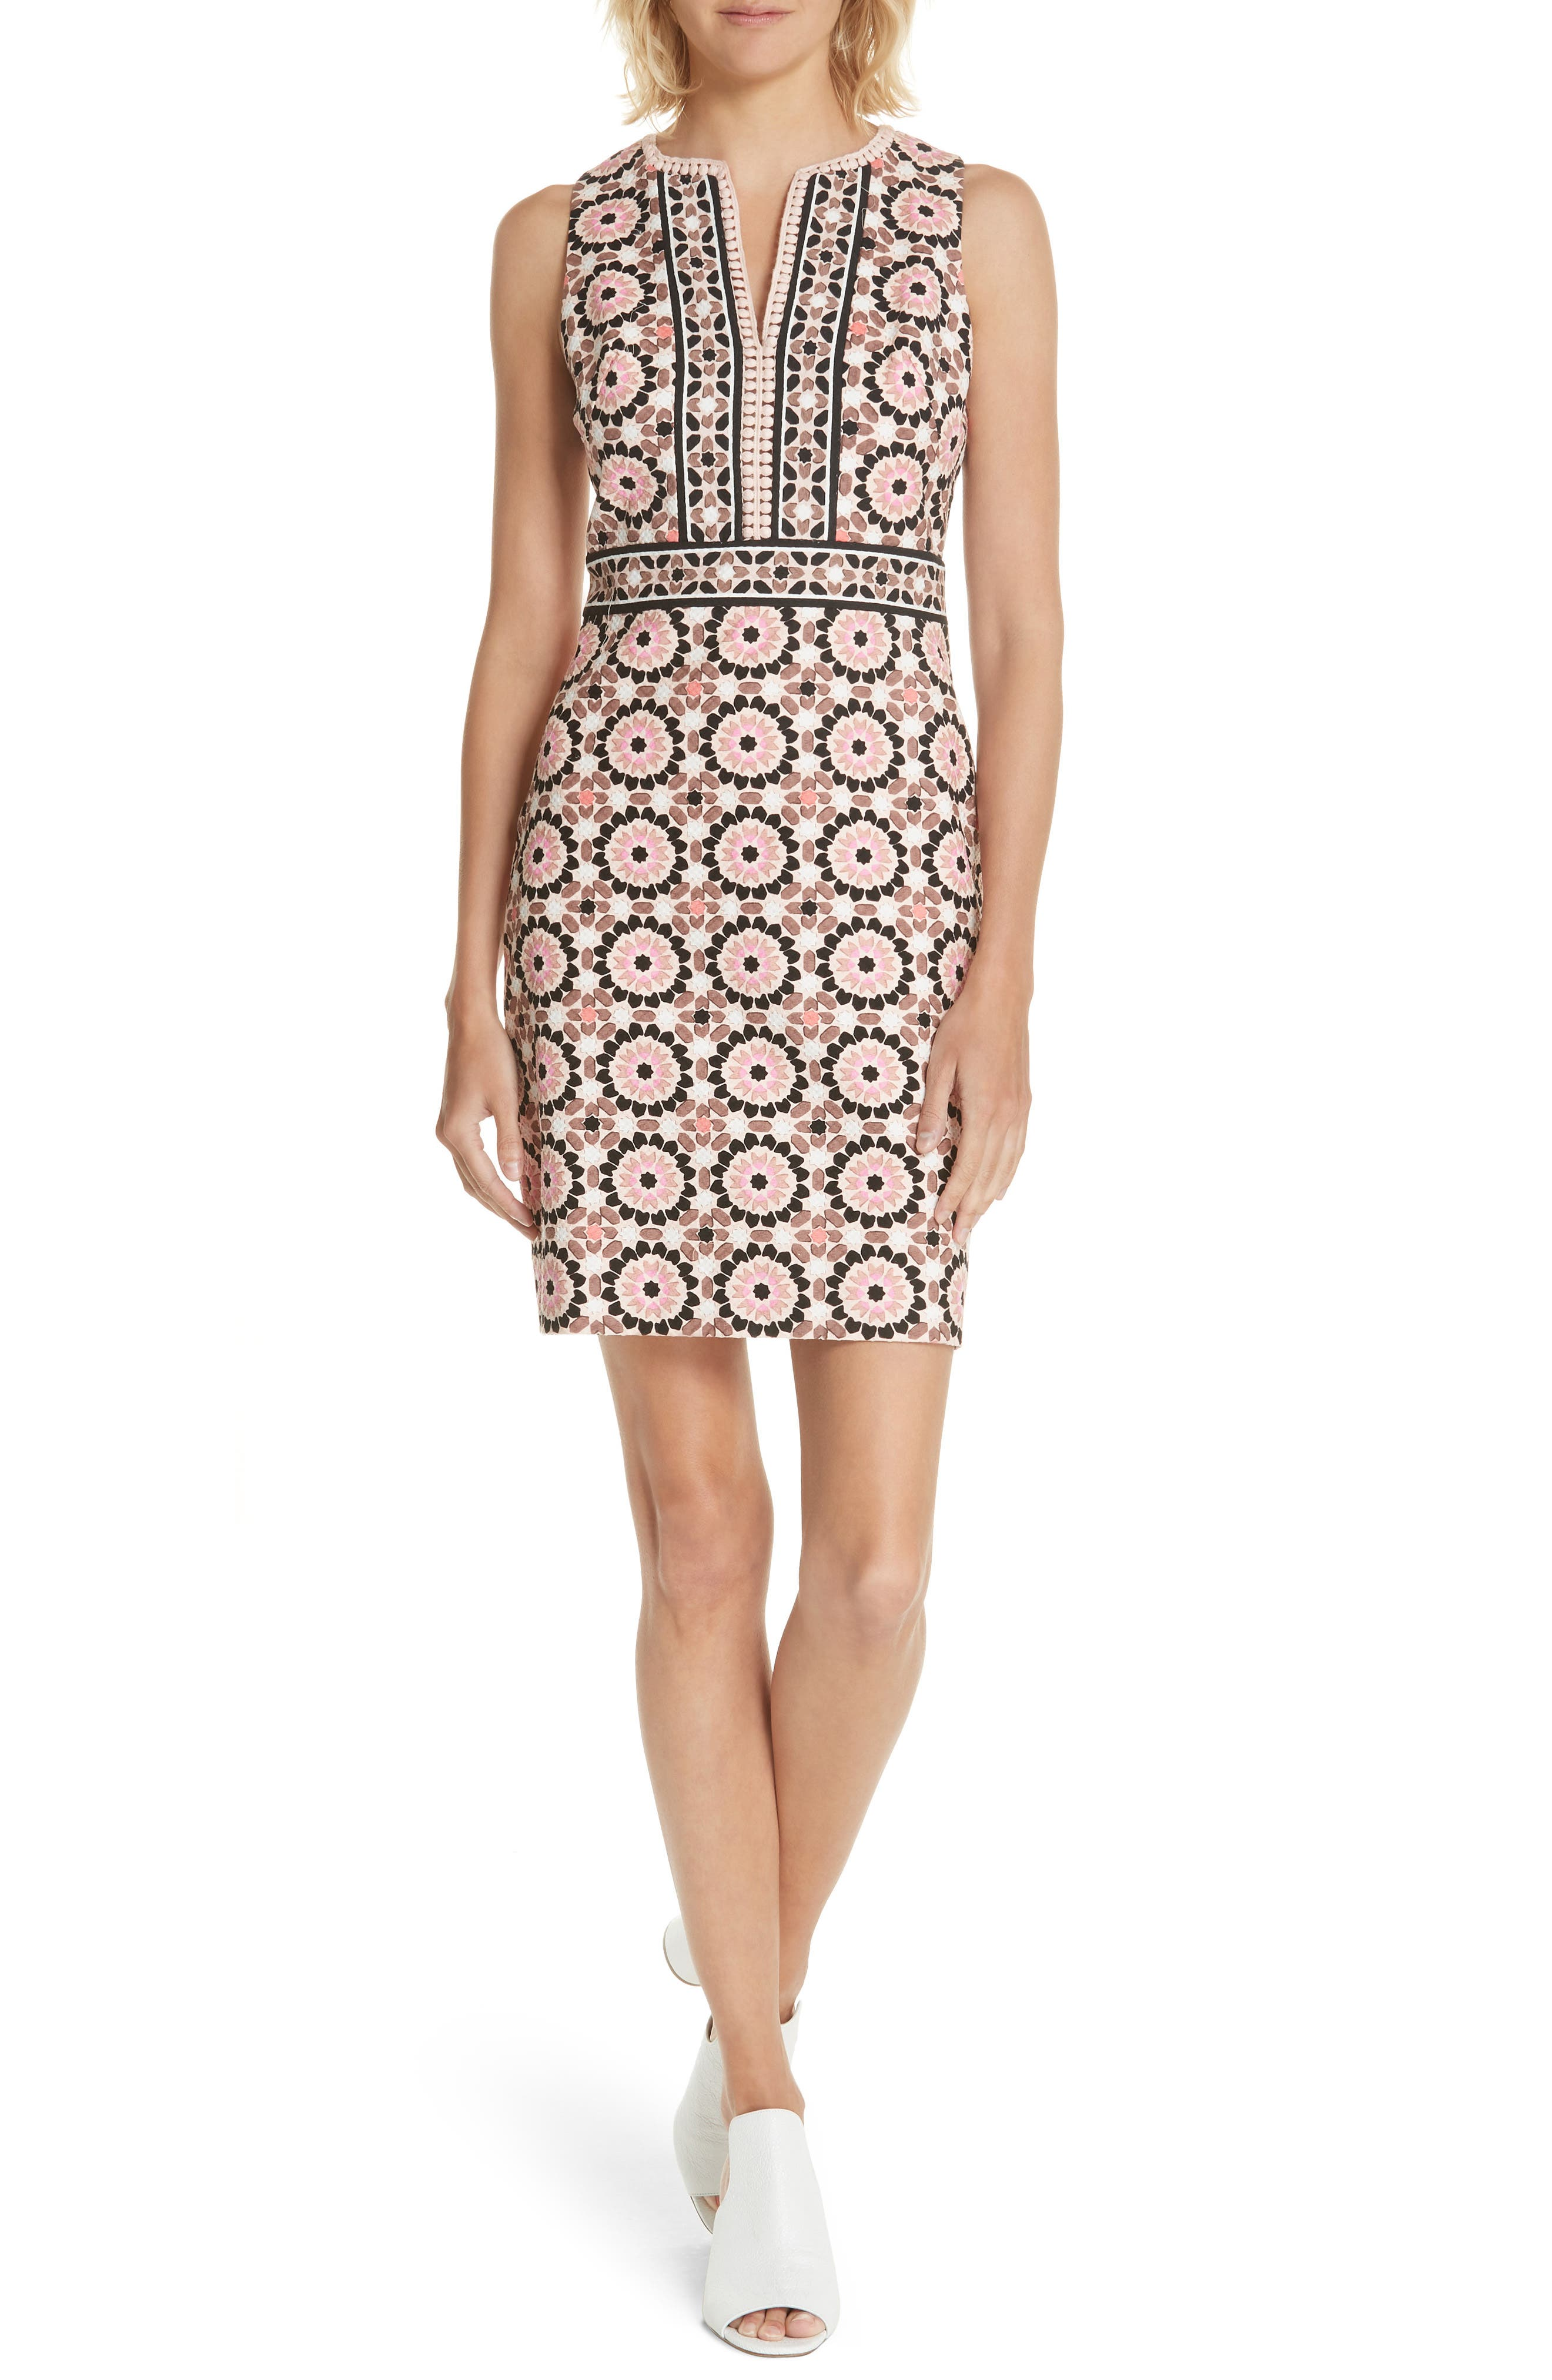 floral mosaic jacquard sheath dress,                         Main,                         color, Pearl Pink Multi